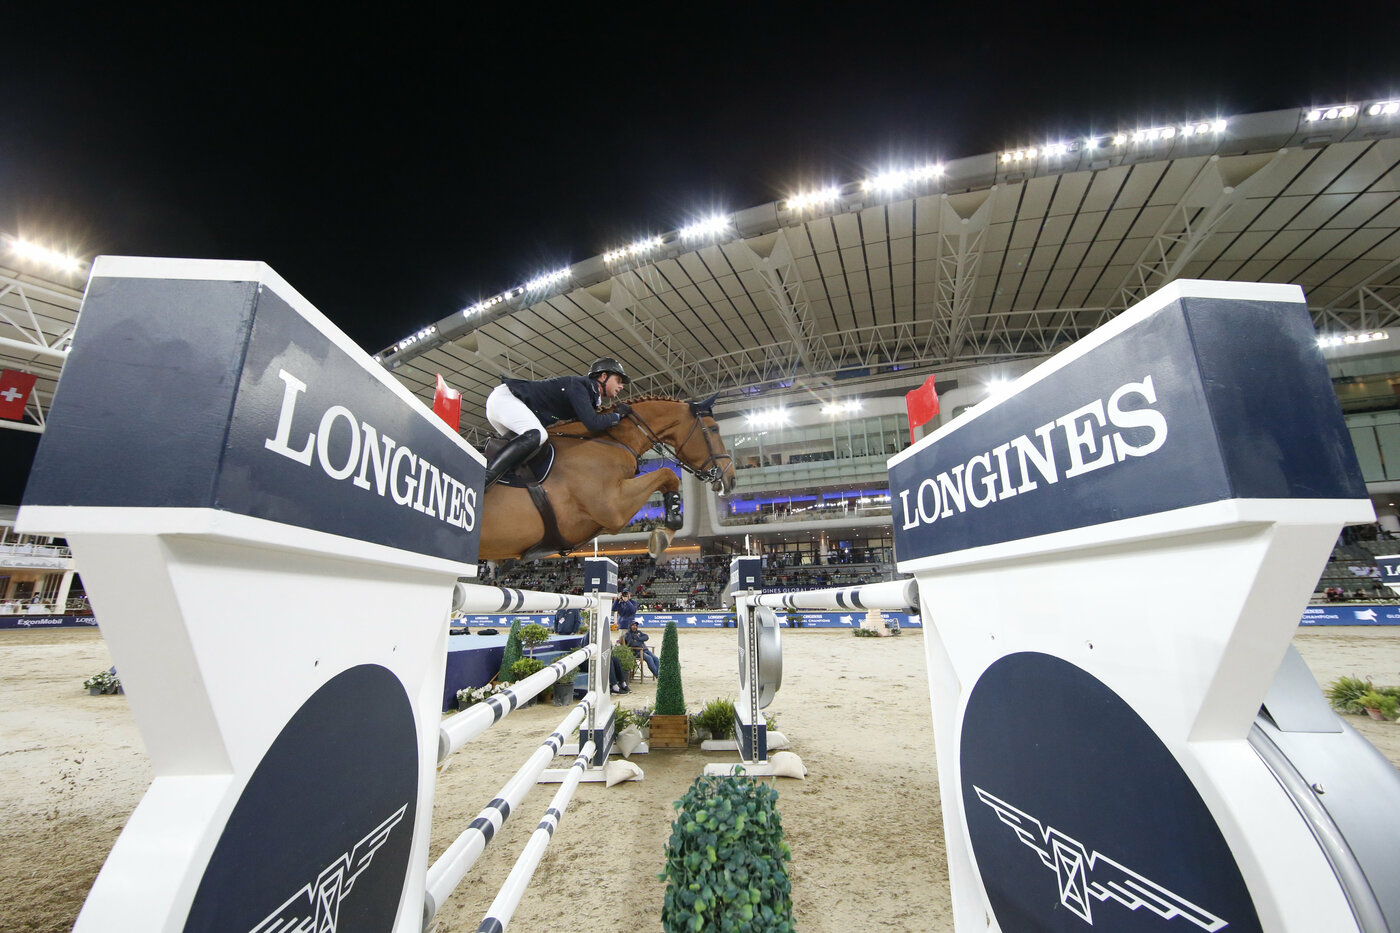 Longines Show Jumping Event: Launch of the brand new season of the Longines Global Champions Tour in Doha 4